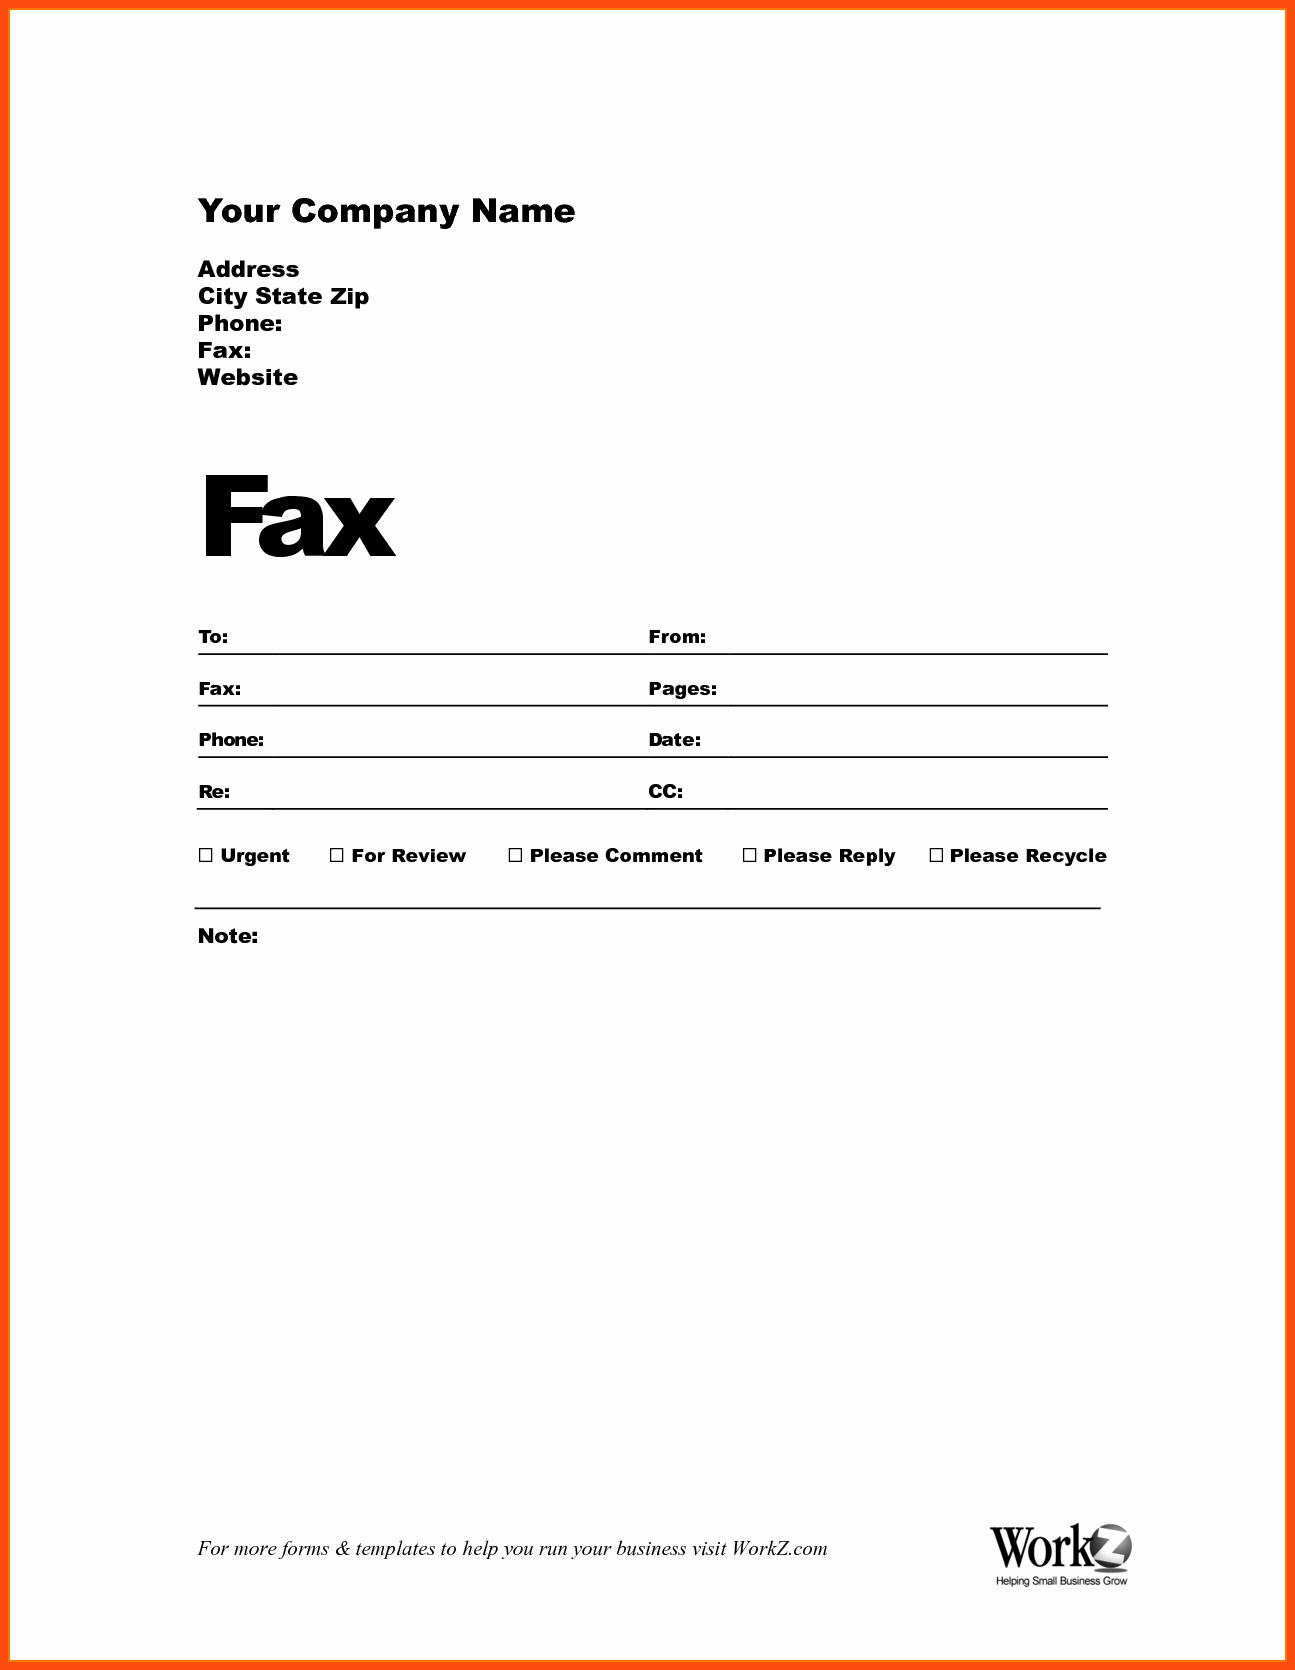 Free Fax Templates for Word Luxury How to Fill Out A Fax Cover Sheet